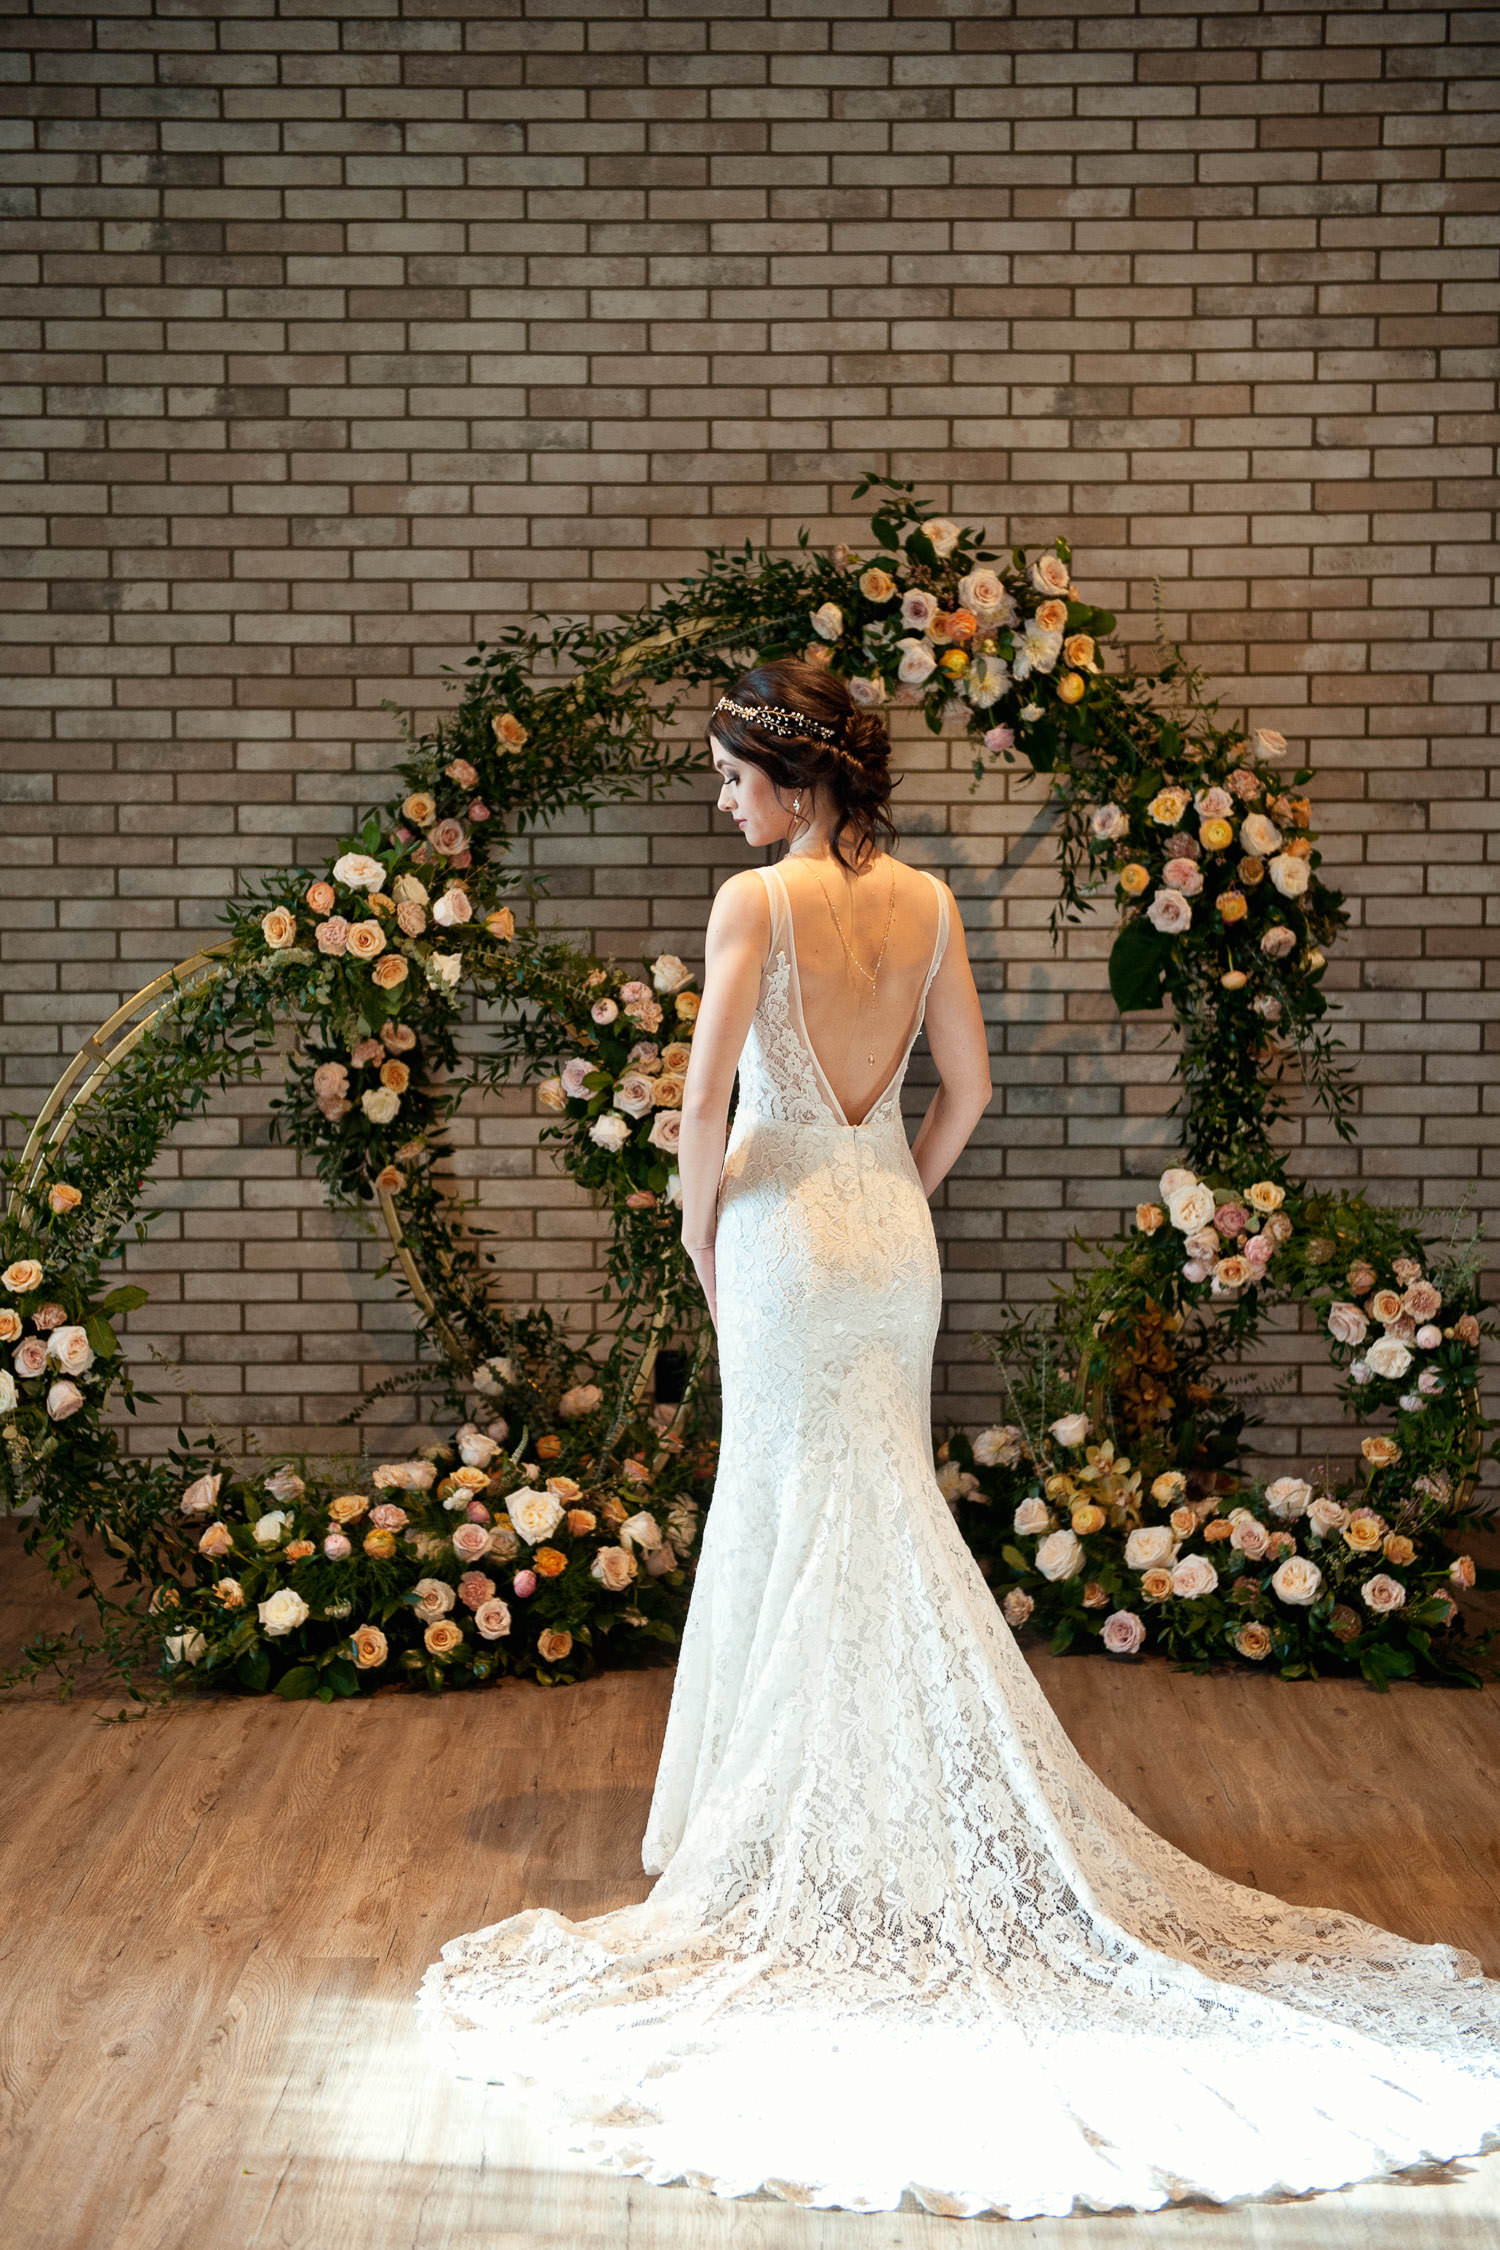 bride at her Hudson wedding ceremony captured by Tara Whittaker Photography